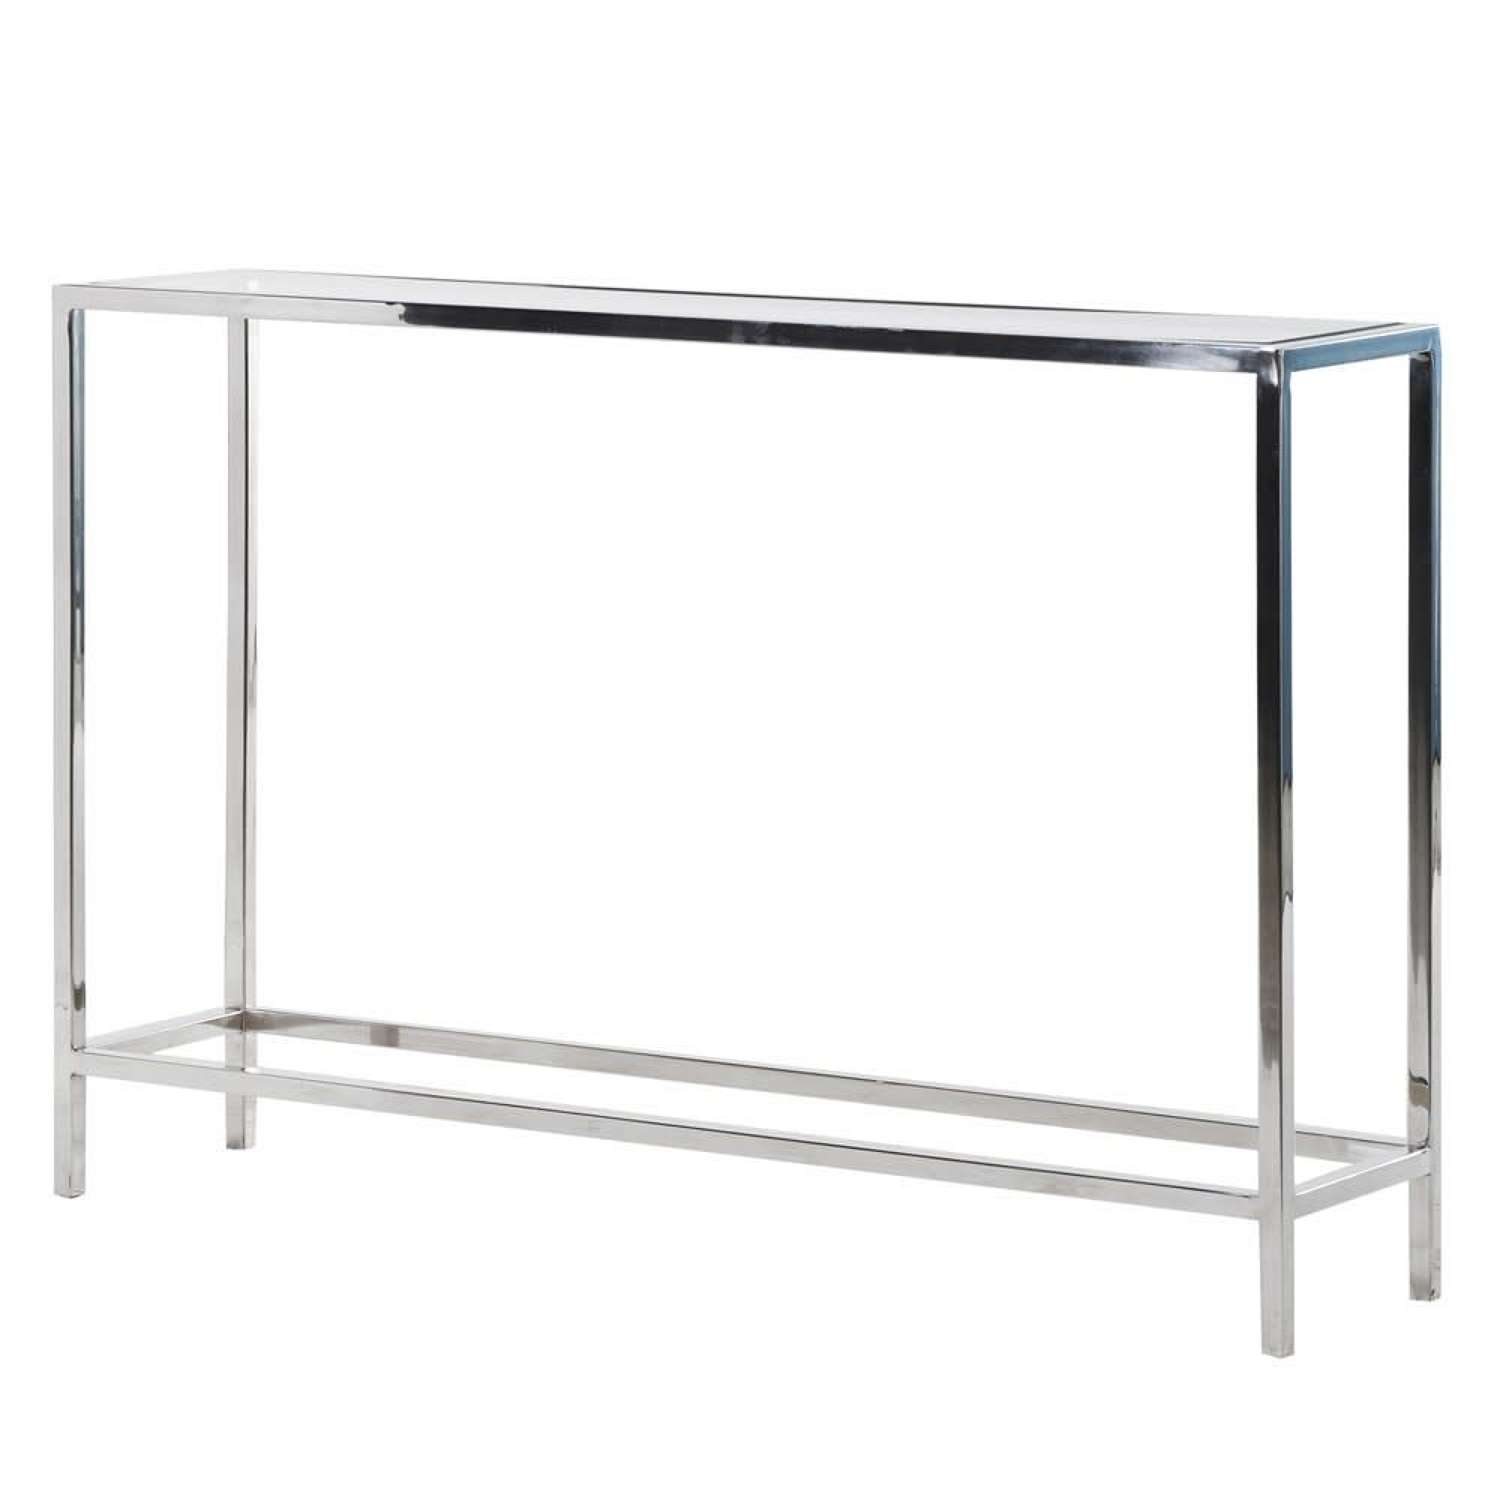 Sleek Stainless Steel Console with Tempered Glass Top